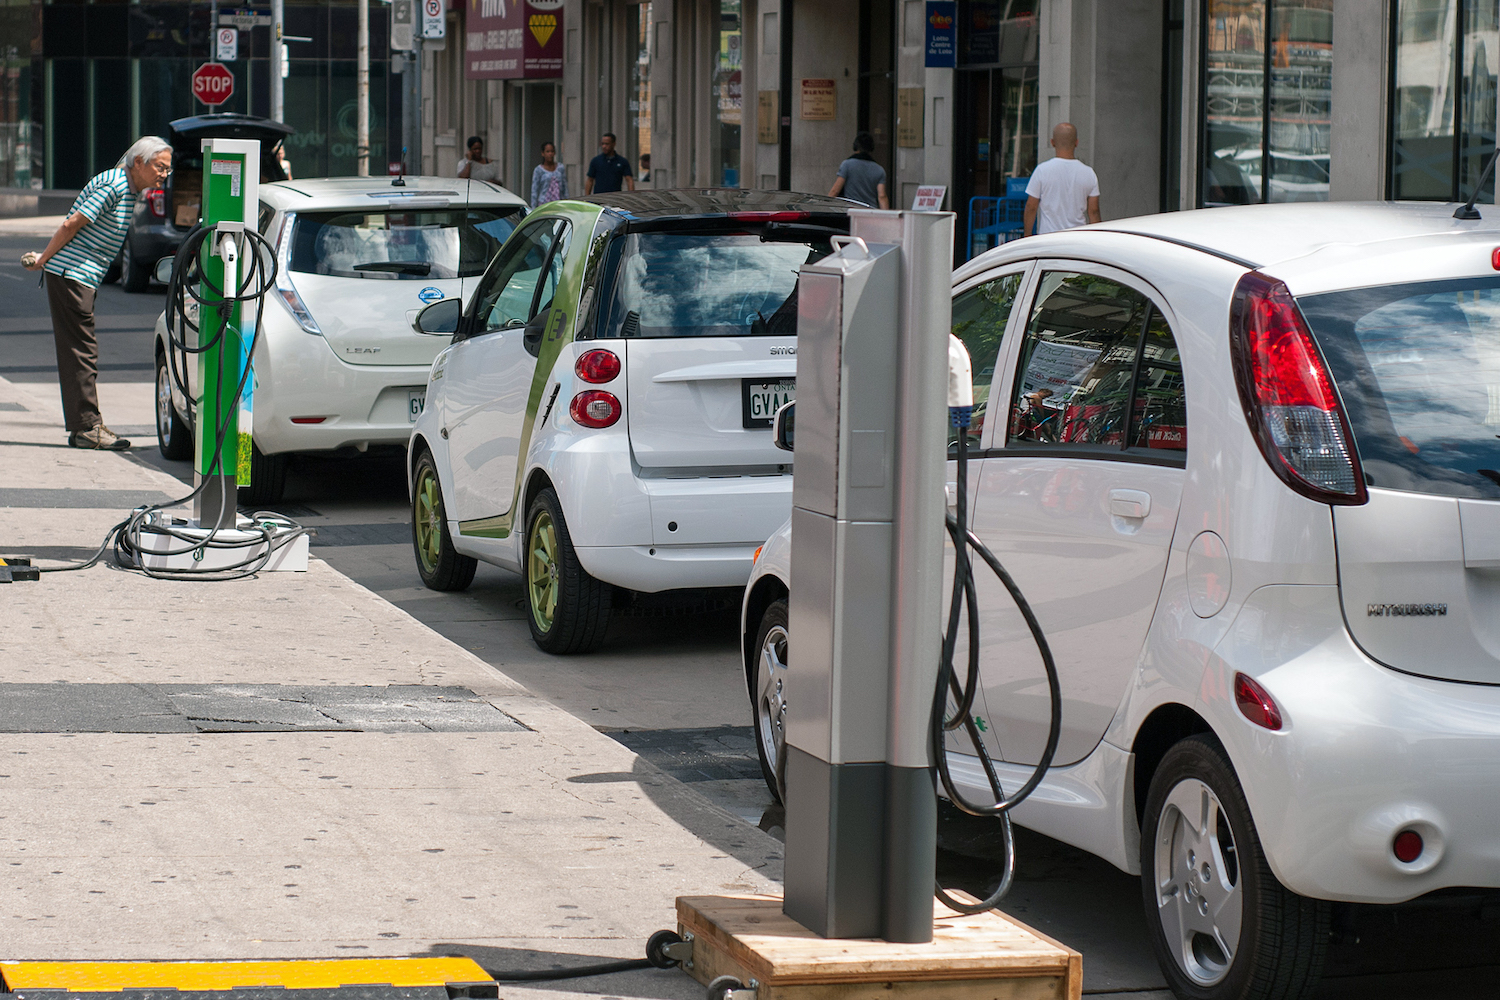 Norway's zero-emission plan would leave many streets looking like this one in downtown Toronto. Pictured: Electric cars charging at power meters. From farthest to closest, a Nissan Leaf, a Smart ED, and a Mitsubishi i MiEV. (Photo Credit: Plug'n Drive)